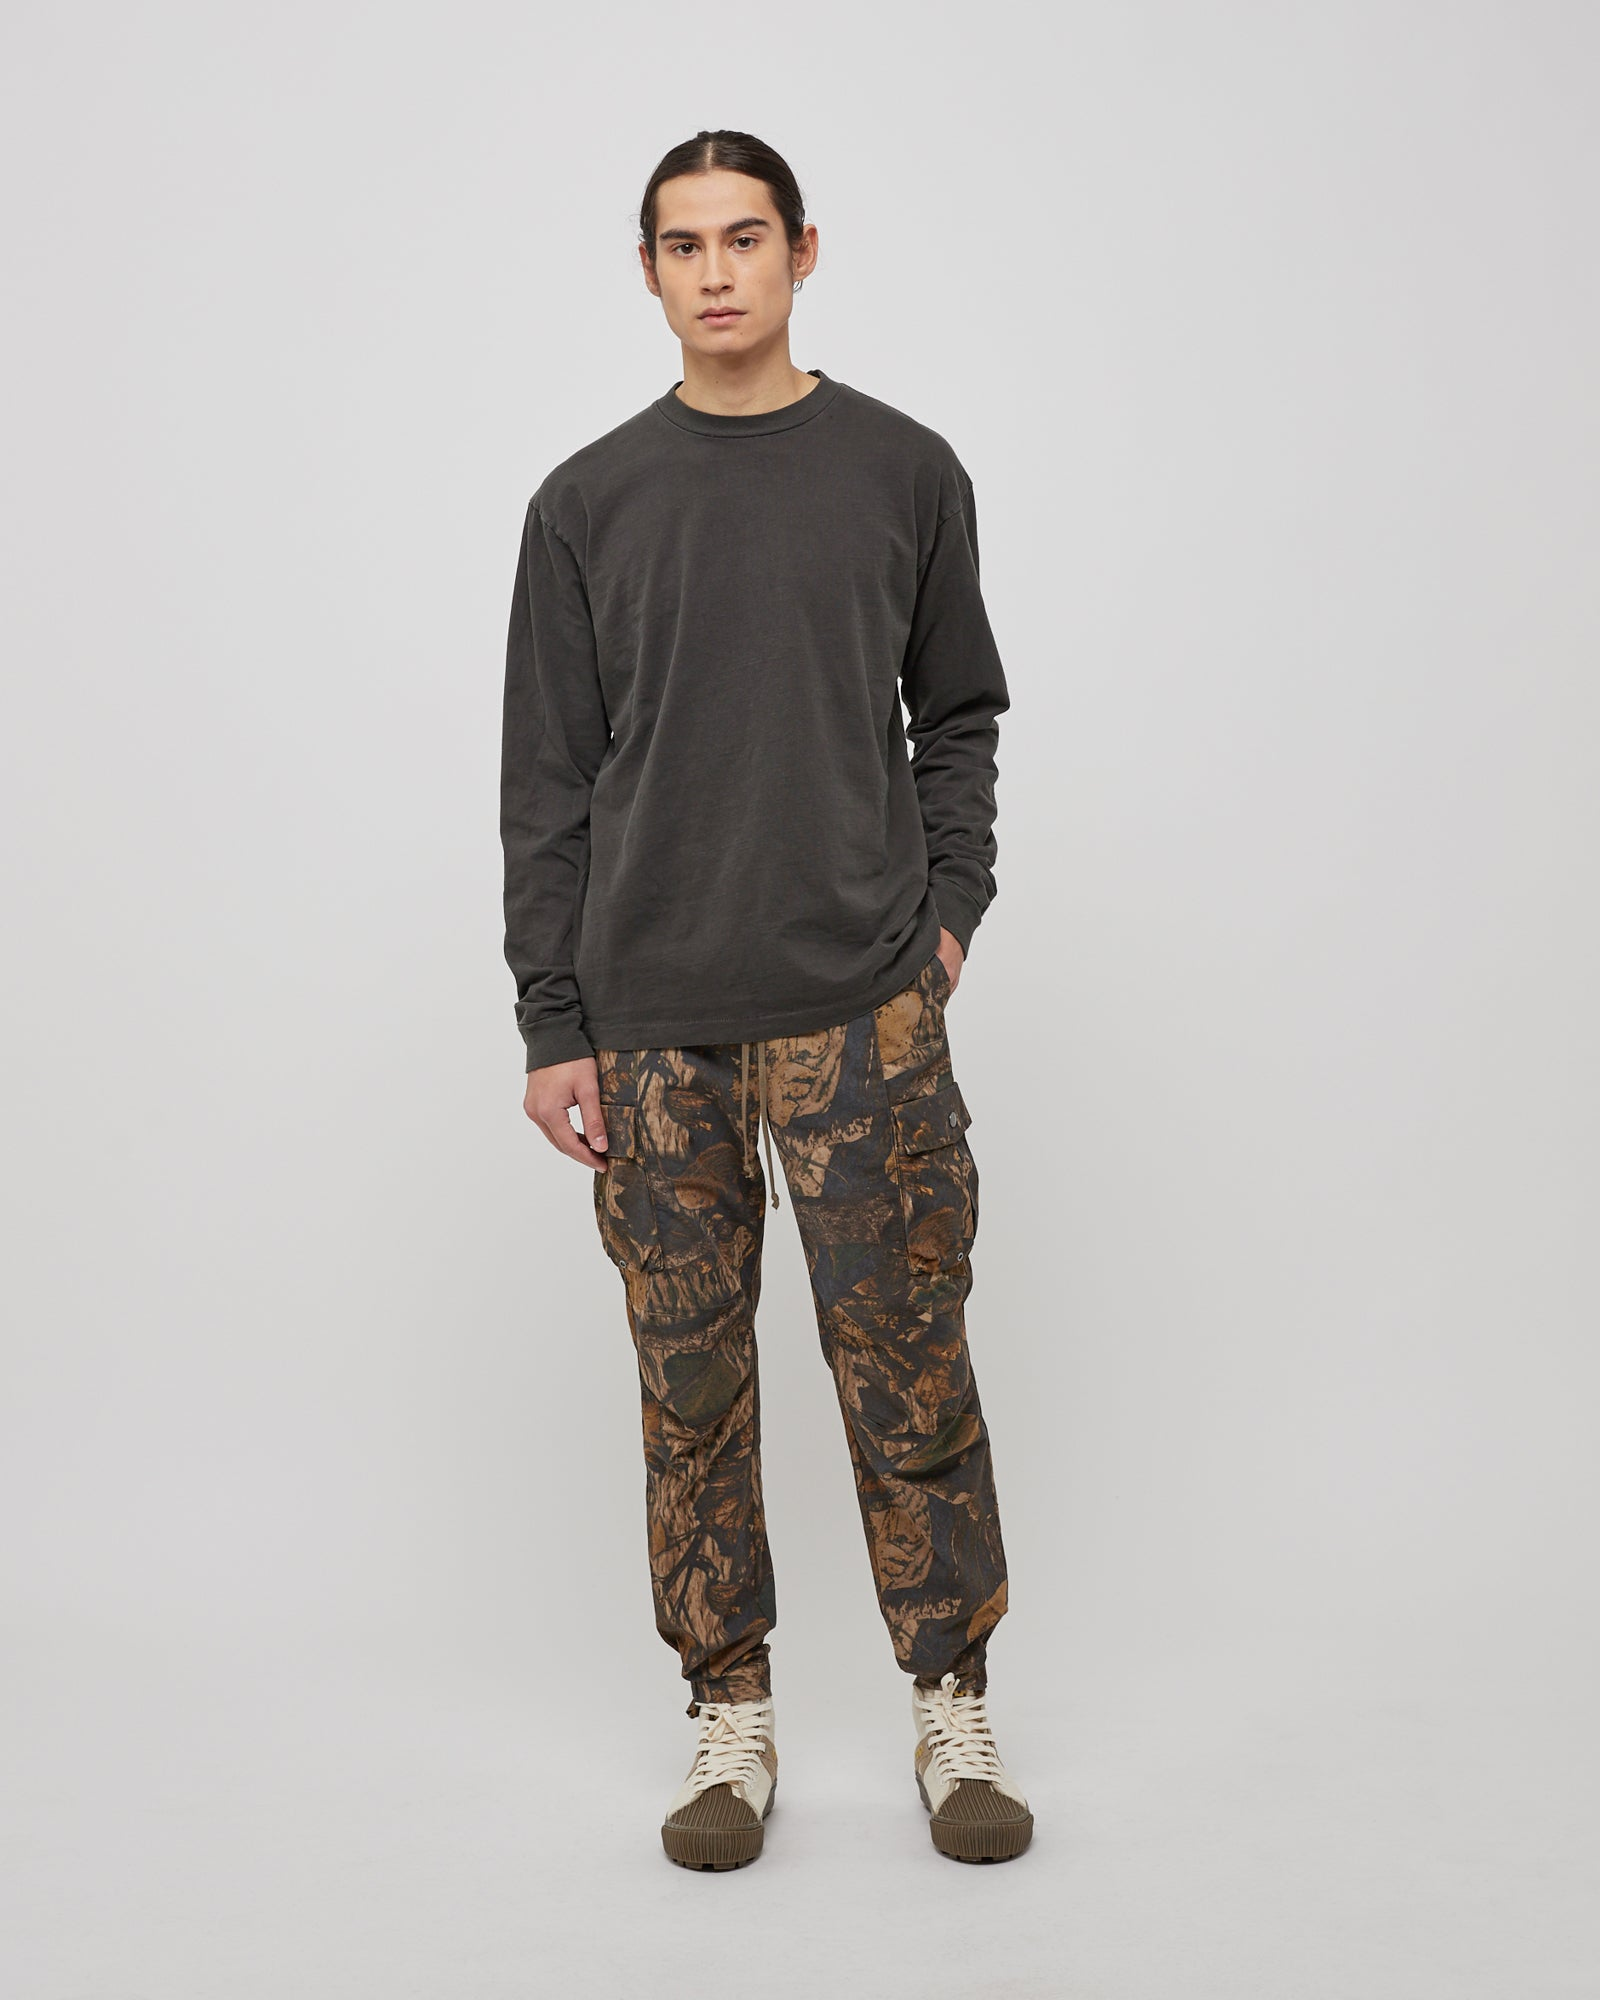 Panorama Cargo Pant in Tree Camo Brown